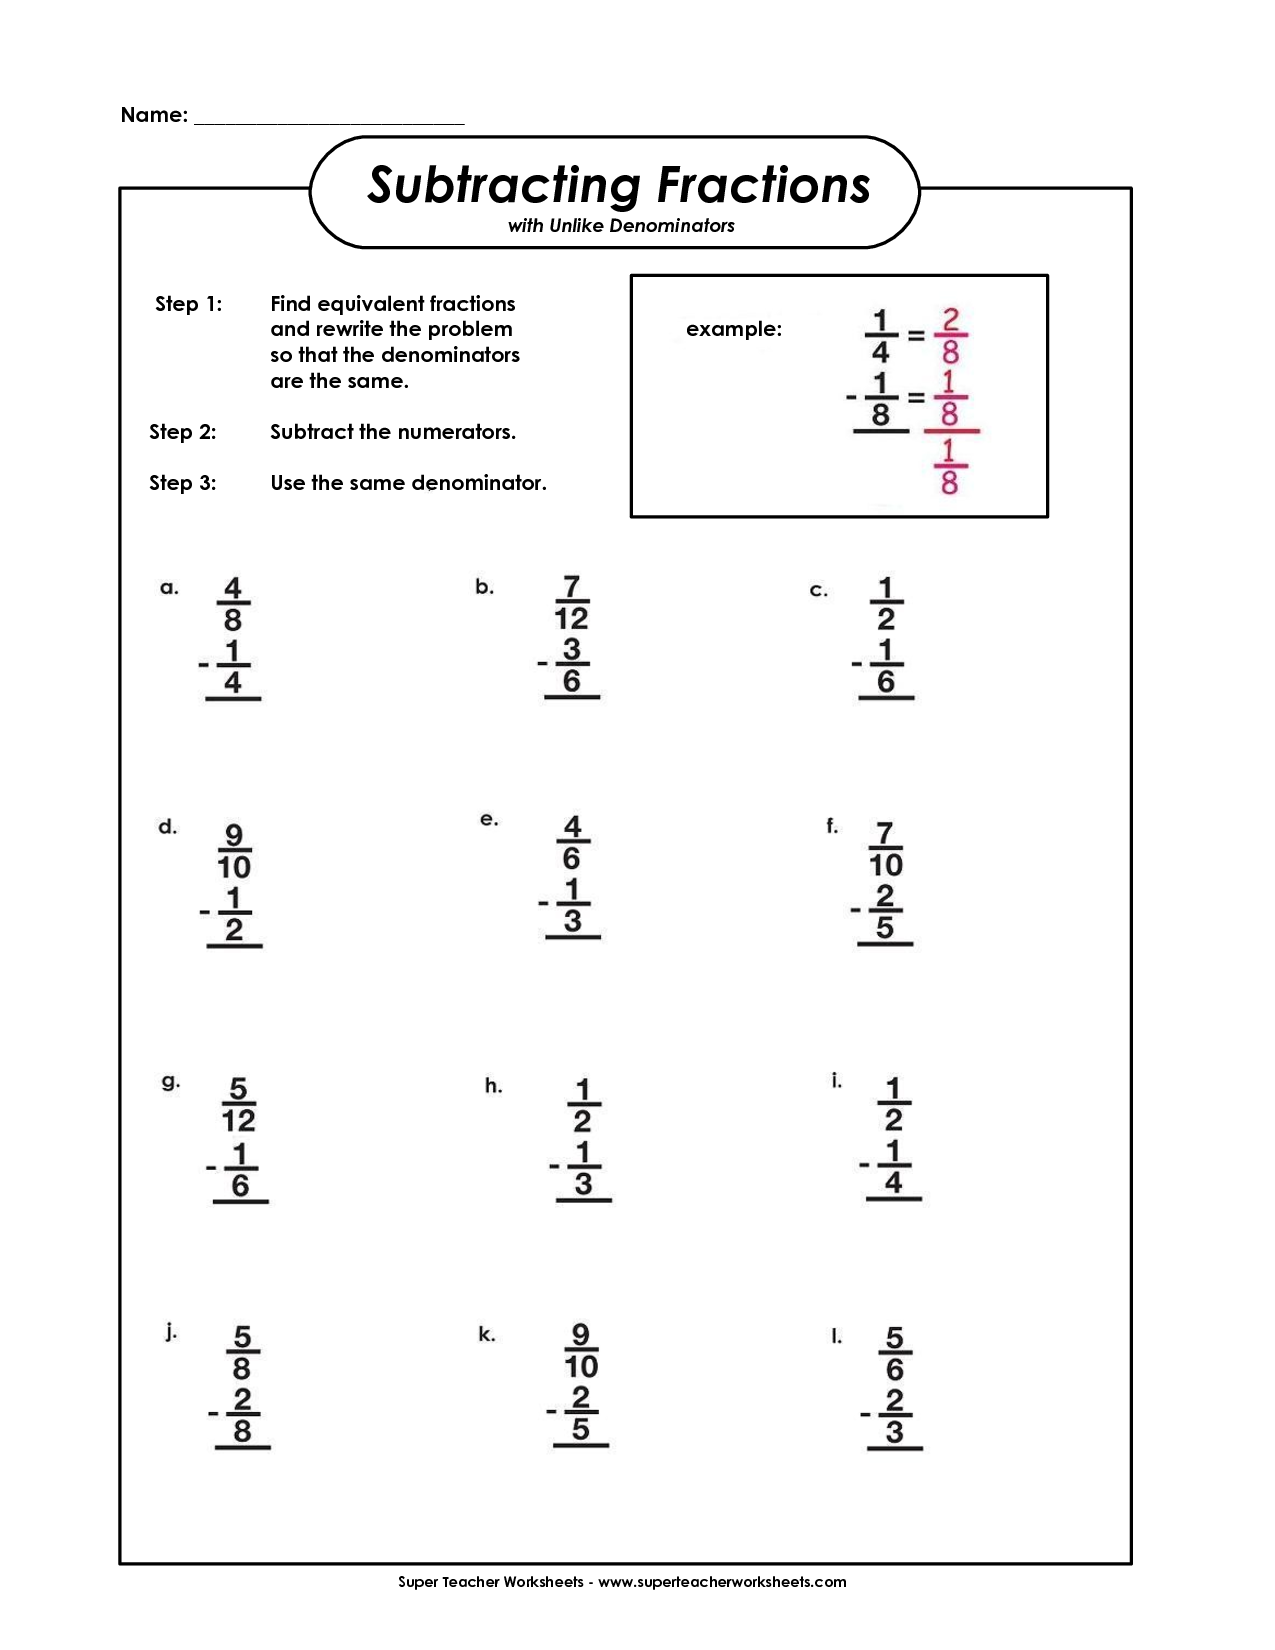 subtracting fractions with unlike denominators | teacher ideas